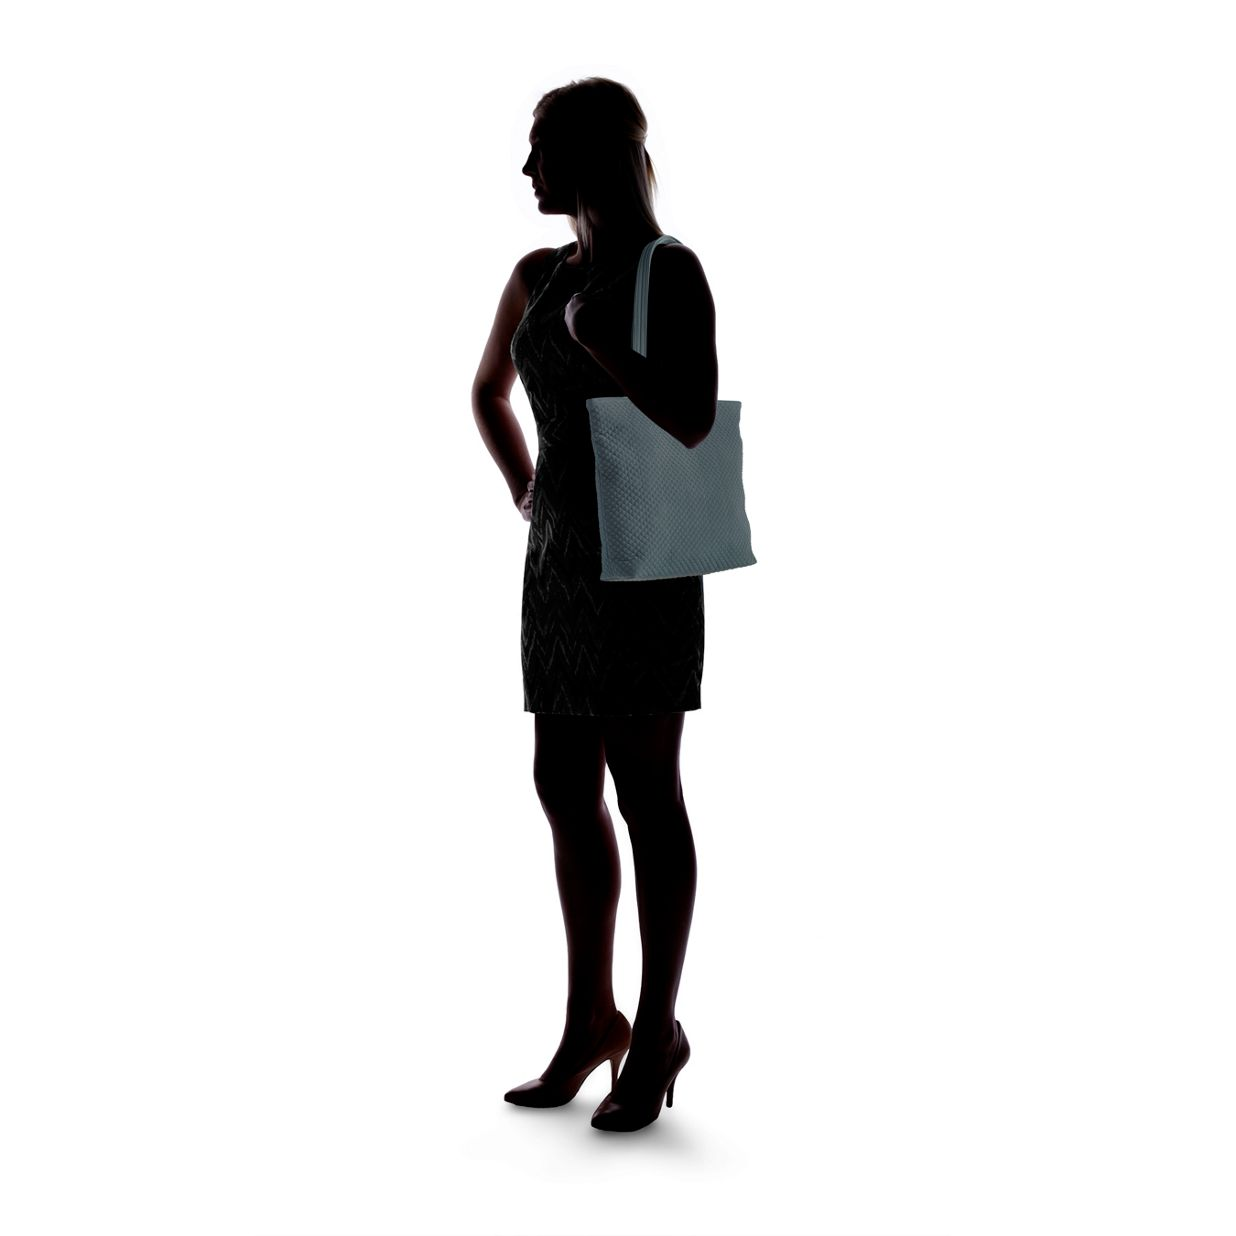 a983ae52ddc1 ... Image of Iconic Tote Bag in Classic Black